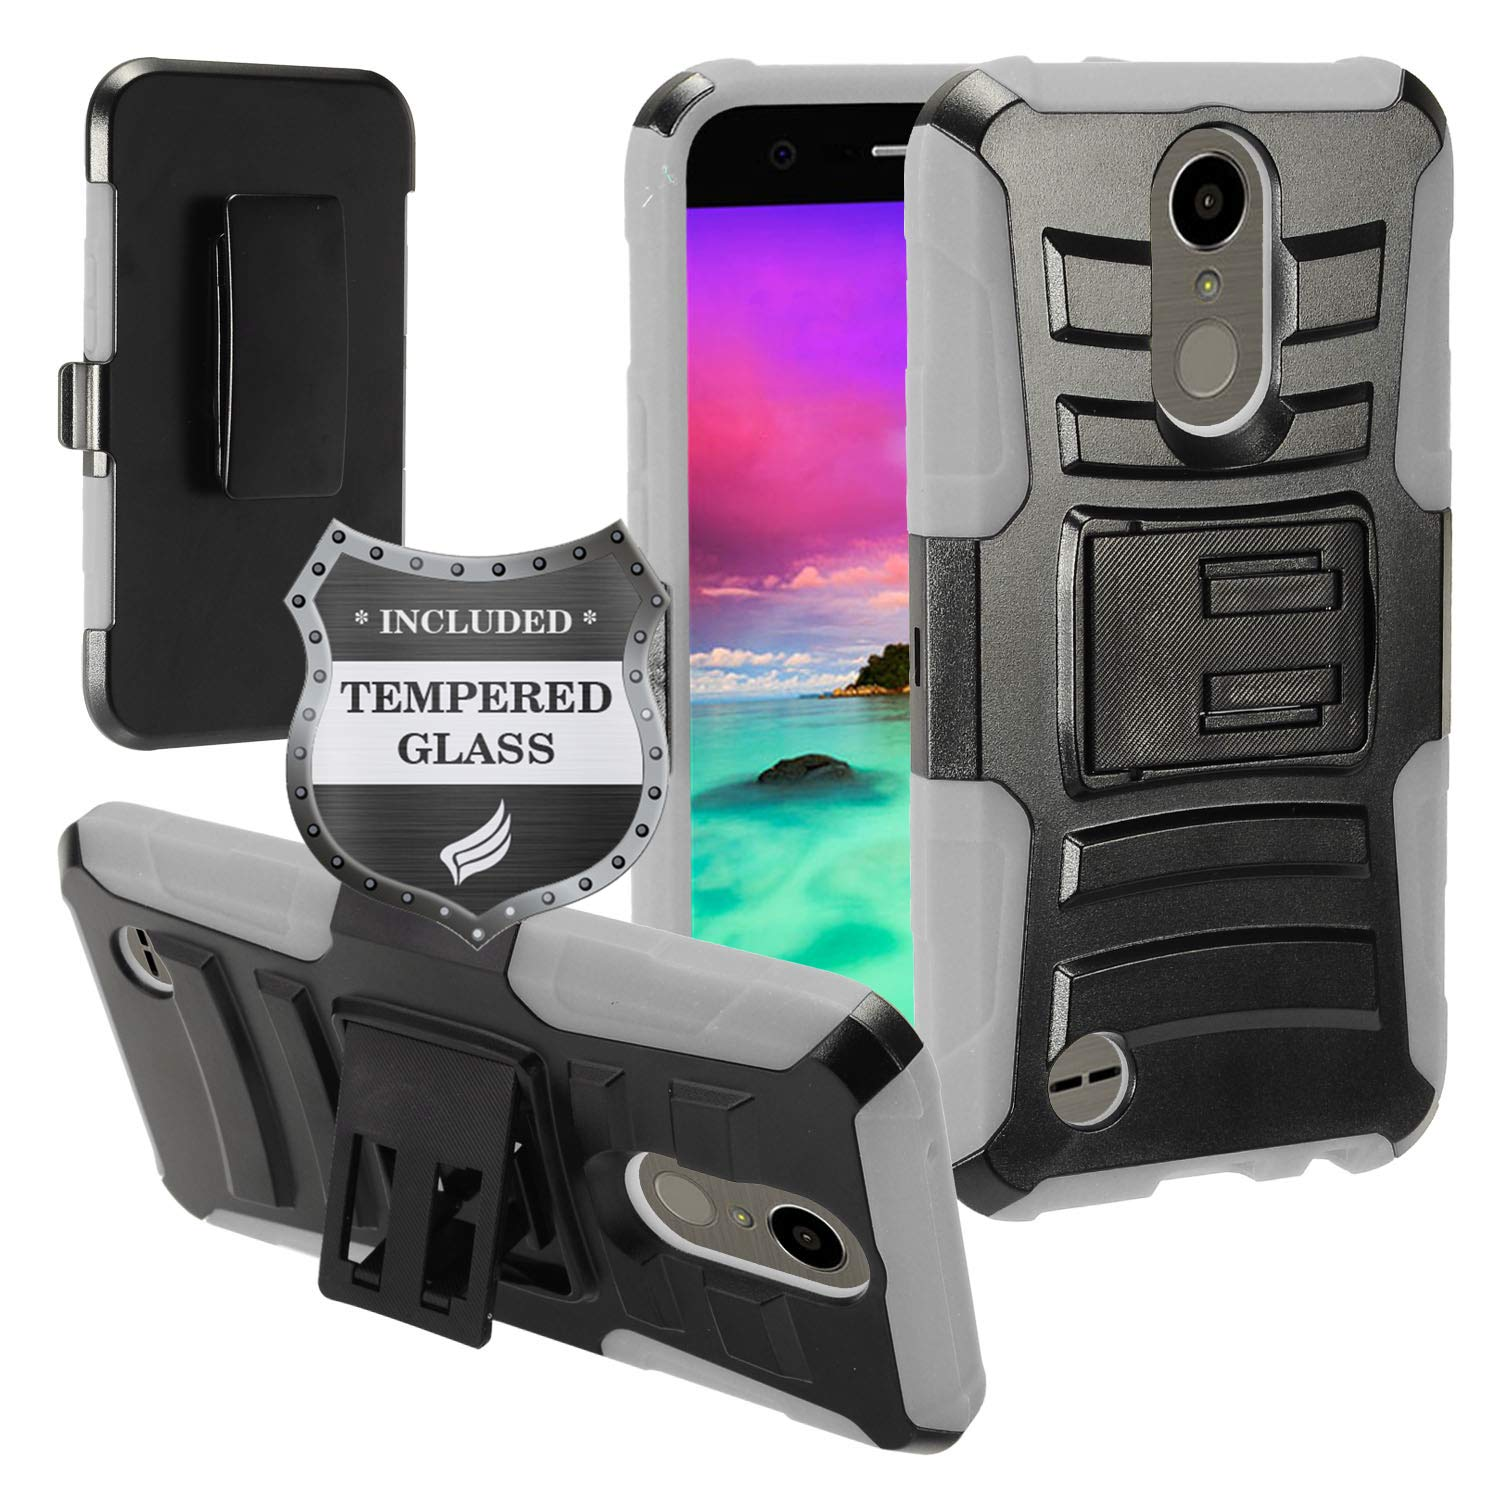 EagleCell - for LG K20 Plus, LG K20 V, LG Grace, LG Harmony, LG K10 (2017) M250 - Hybrid Armor Case with Stand/Belt Clip Holster + Tempered Glass Screen Protector - Gray